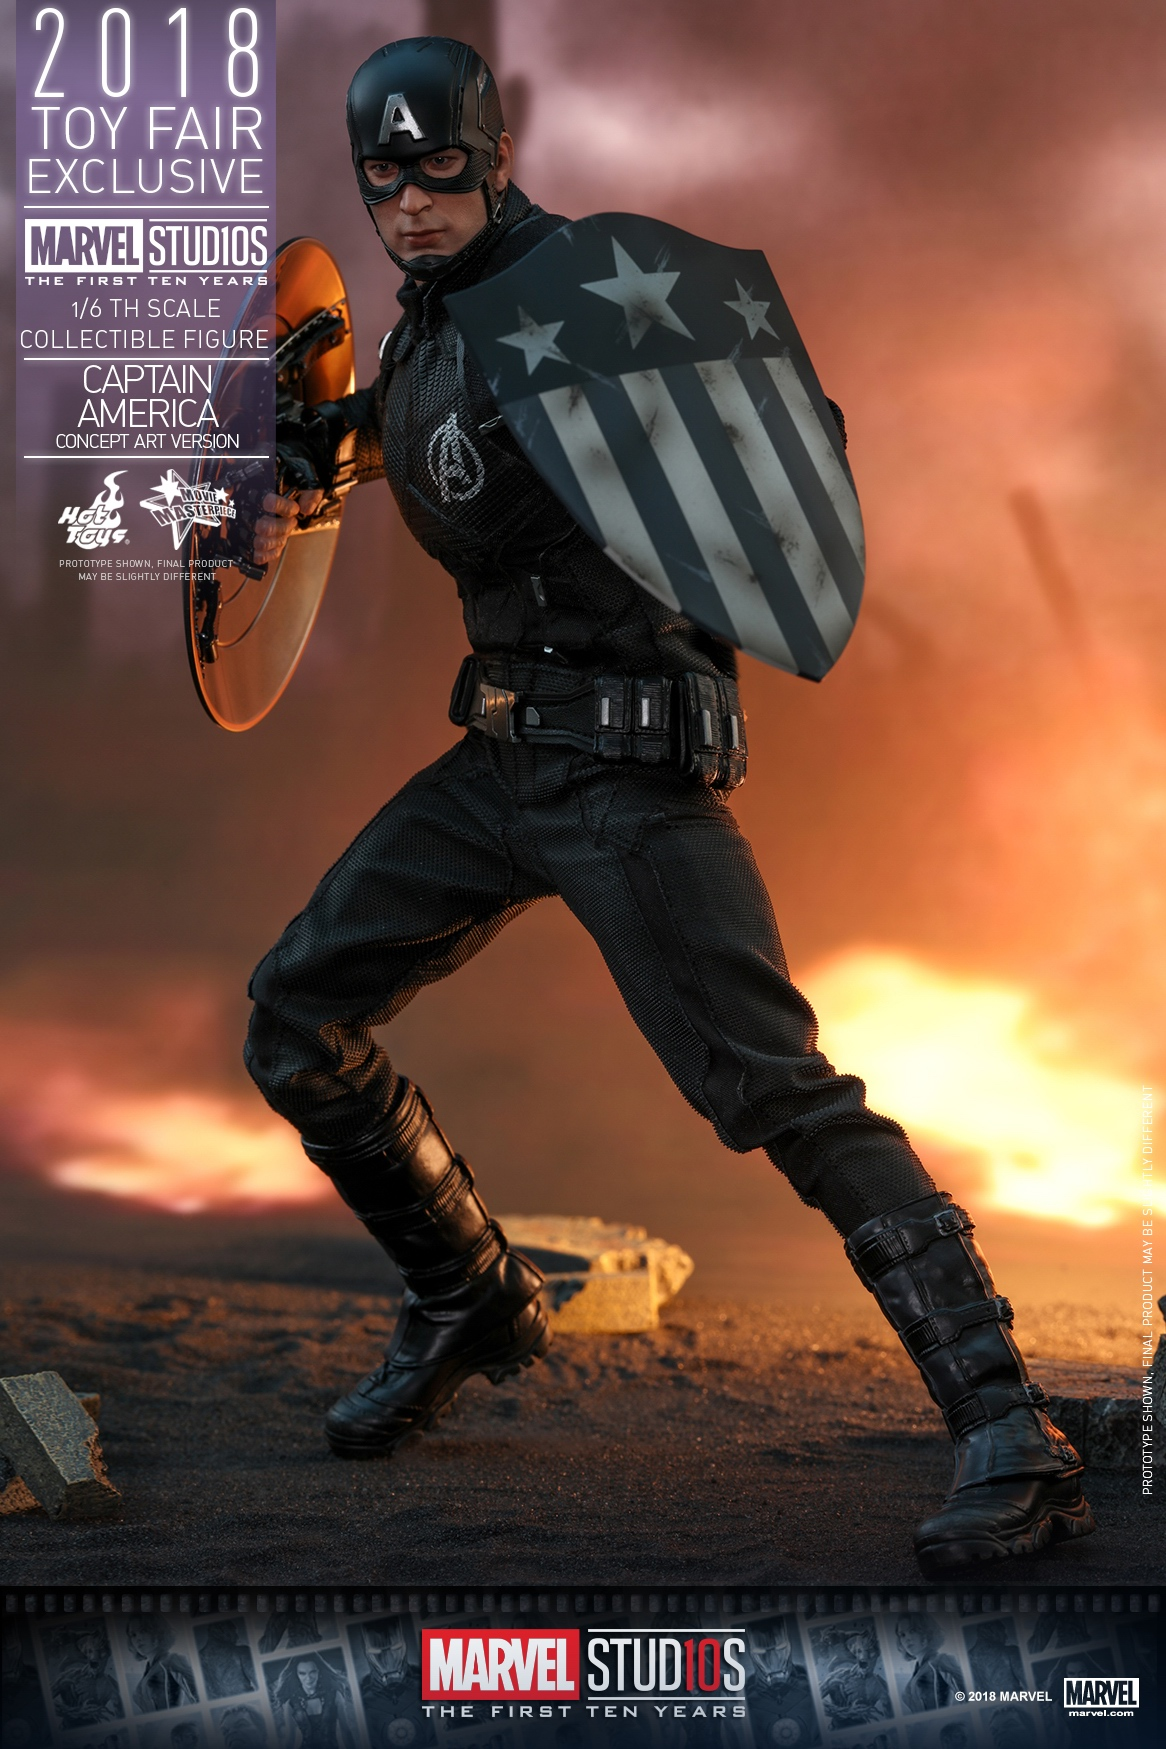 Hot Toys - Marvel Studios 10 - Captain America (Concept Art Version) collectible.jpg